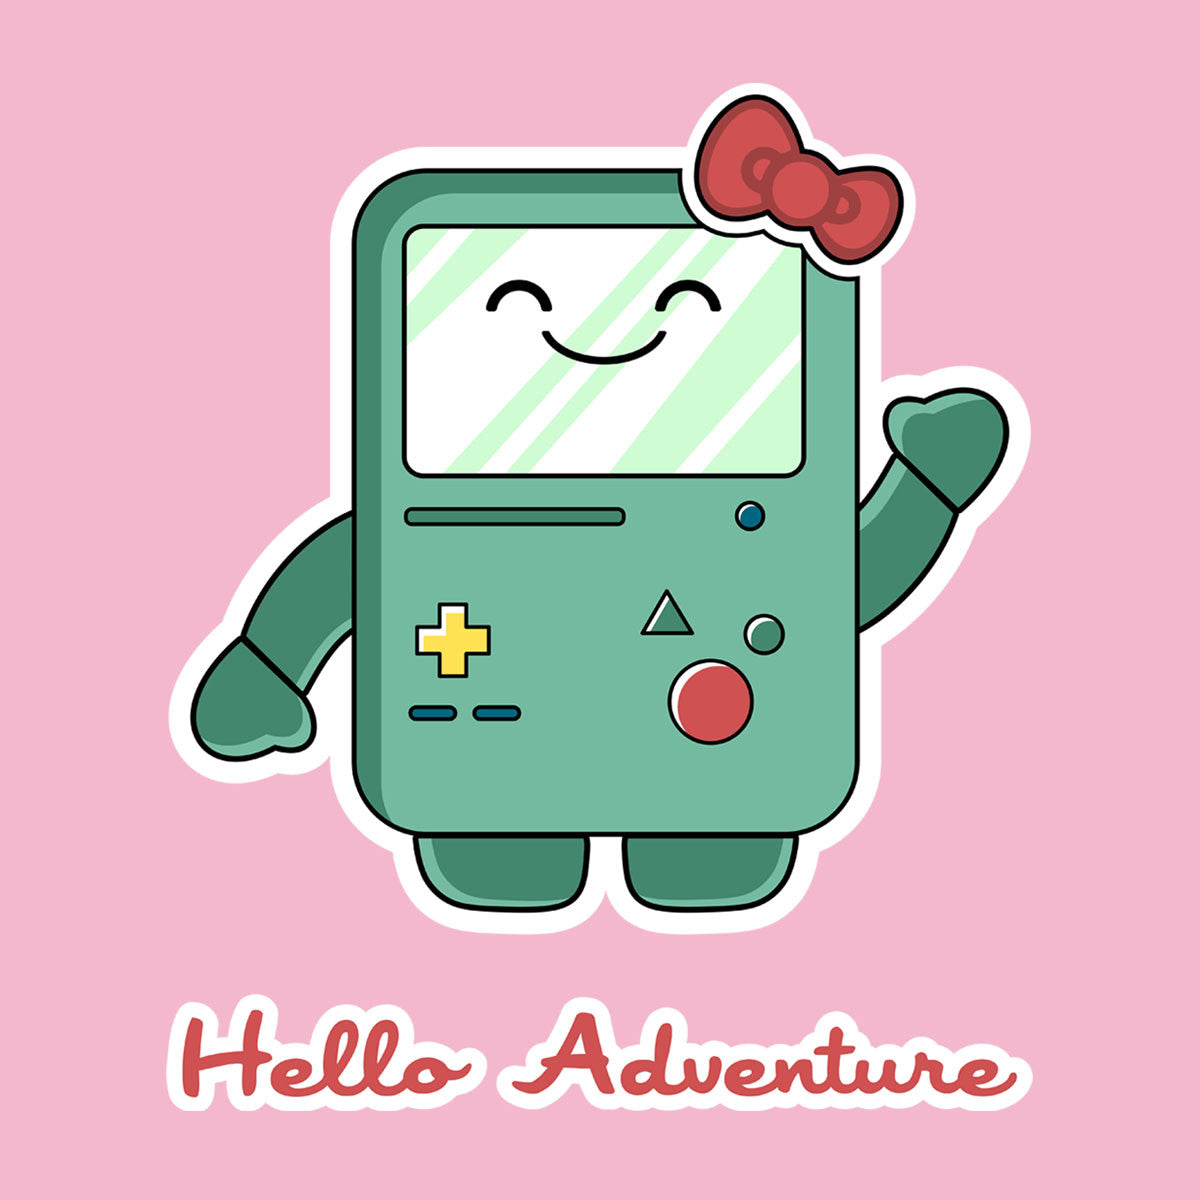 Adventure Time Hello BMO Games Console design Cloud City 7 - 1